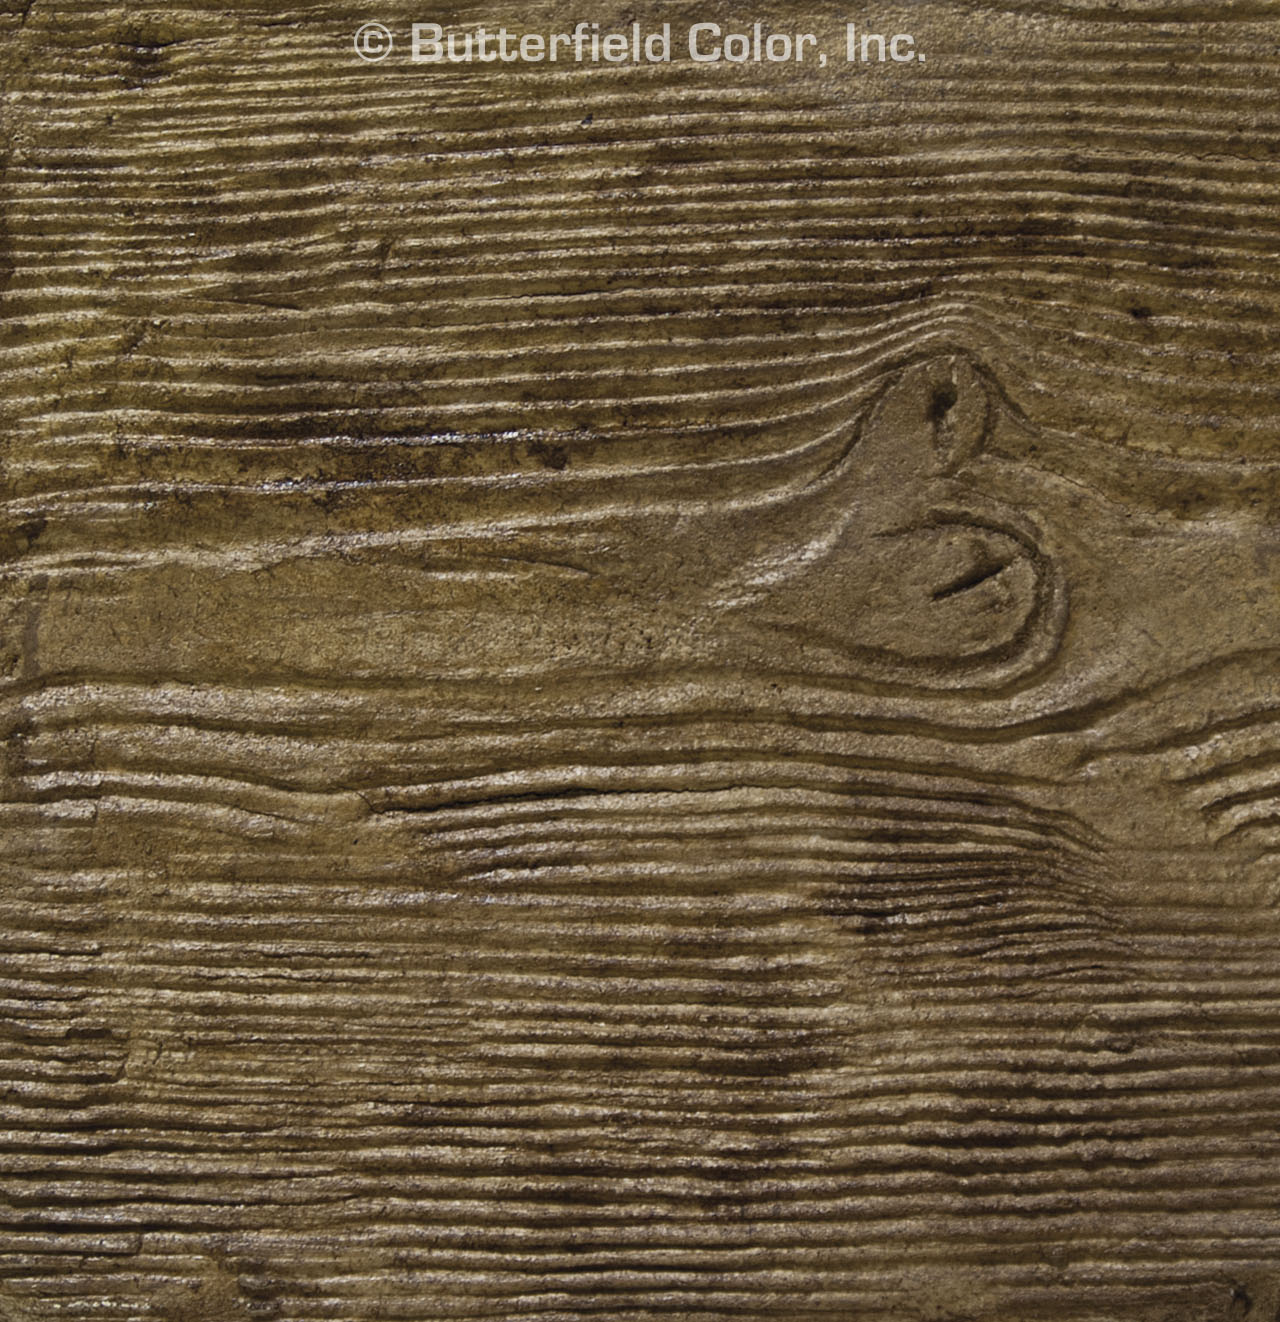 Butterfield Color Medium Wood Grain Texture Touch Up Skin